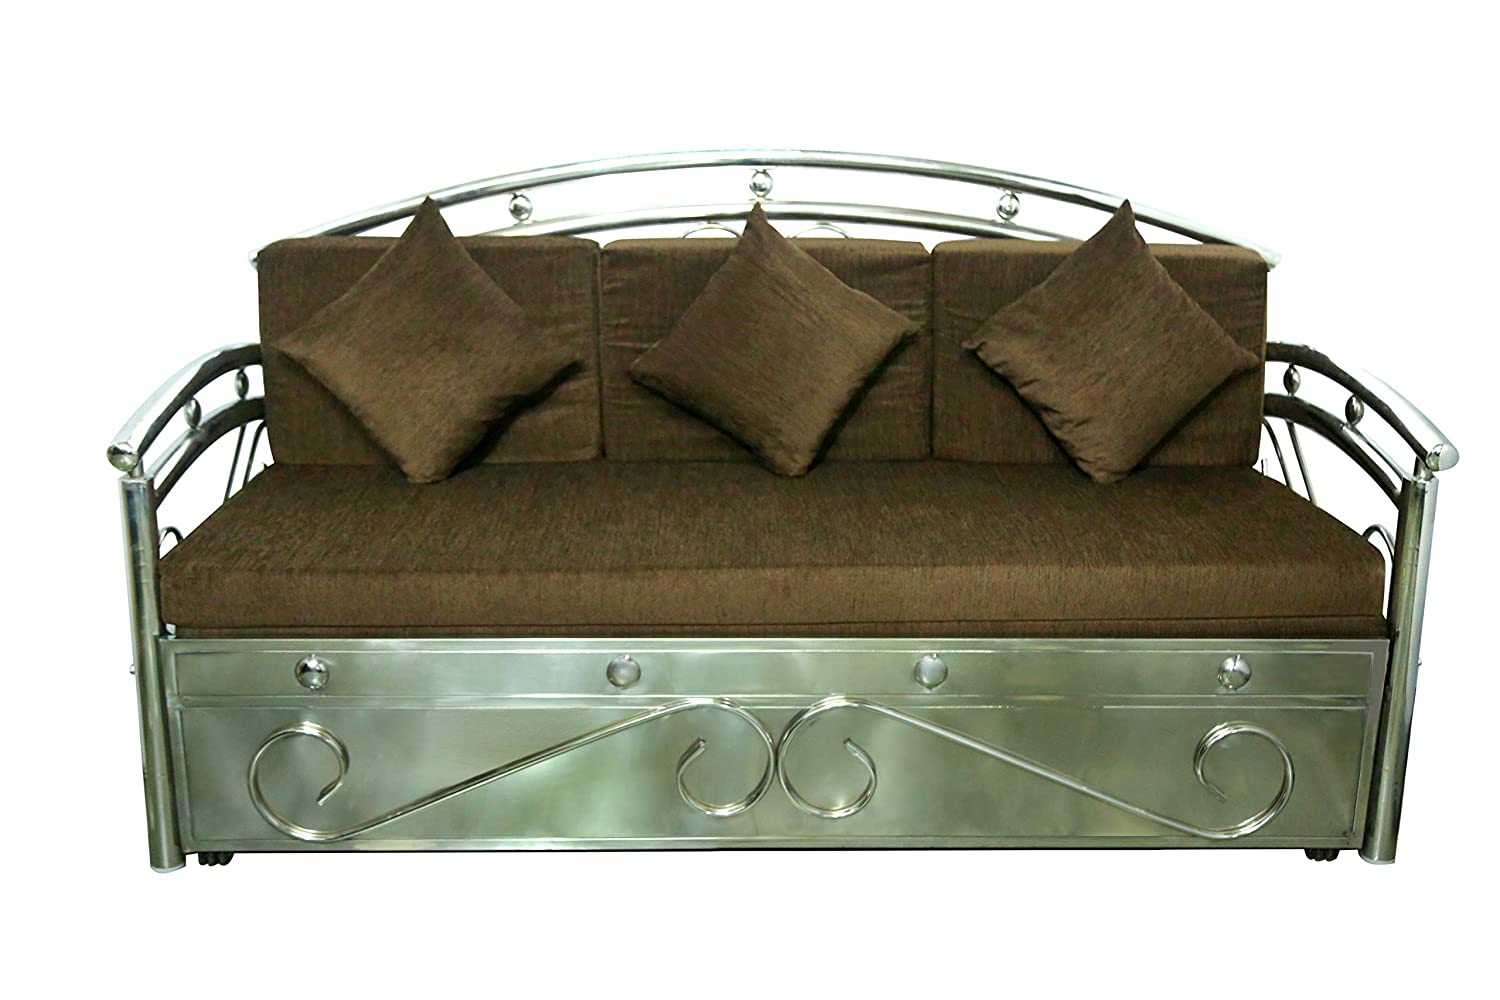 A1 Star Furniture King Size Steel Sofa Cum Bed And Hydraulic Storage